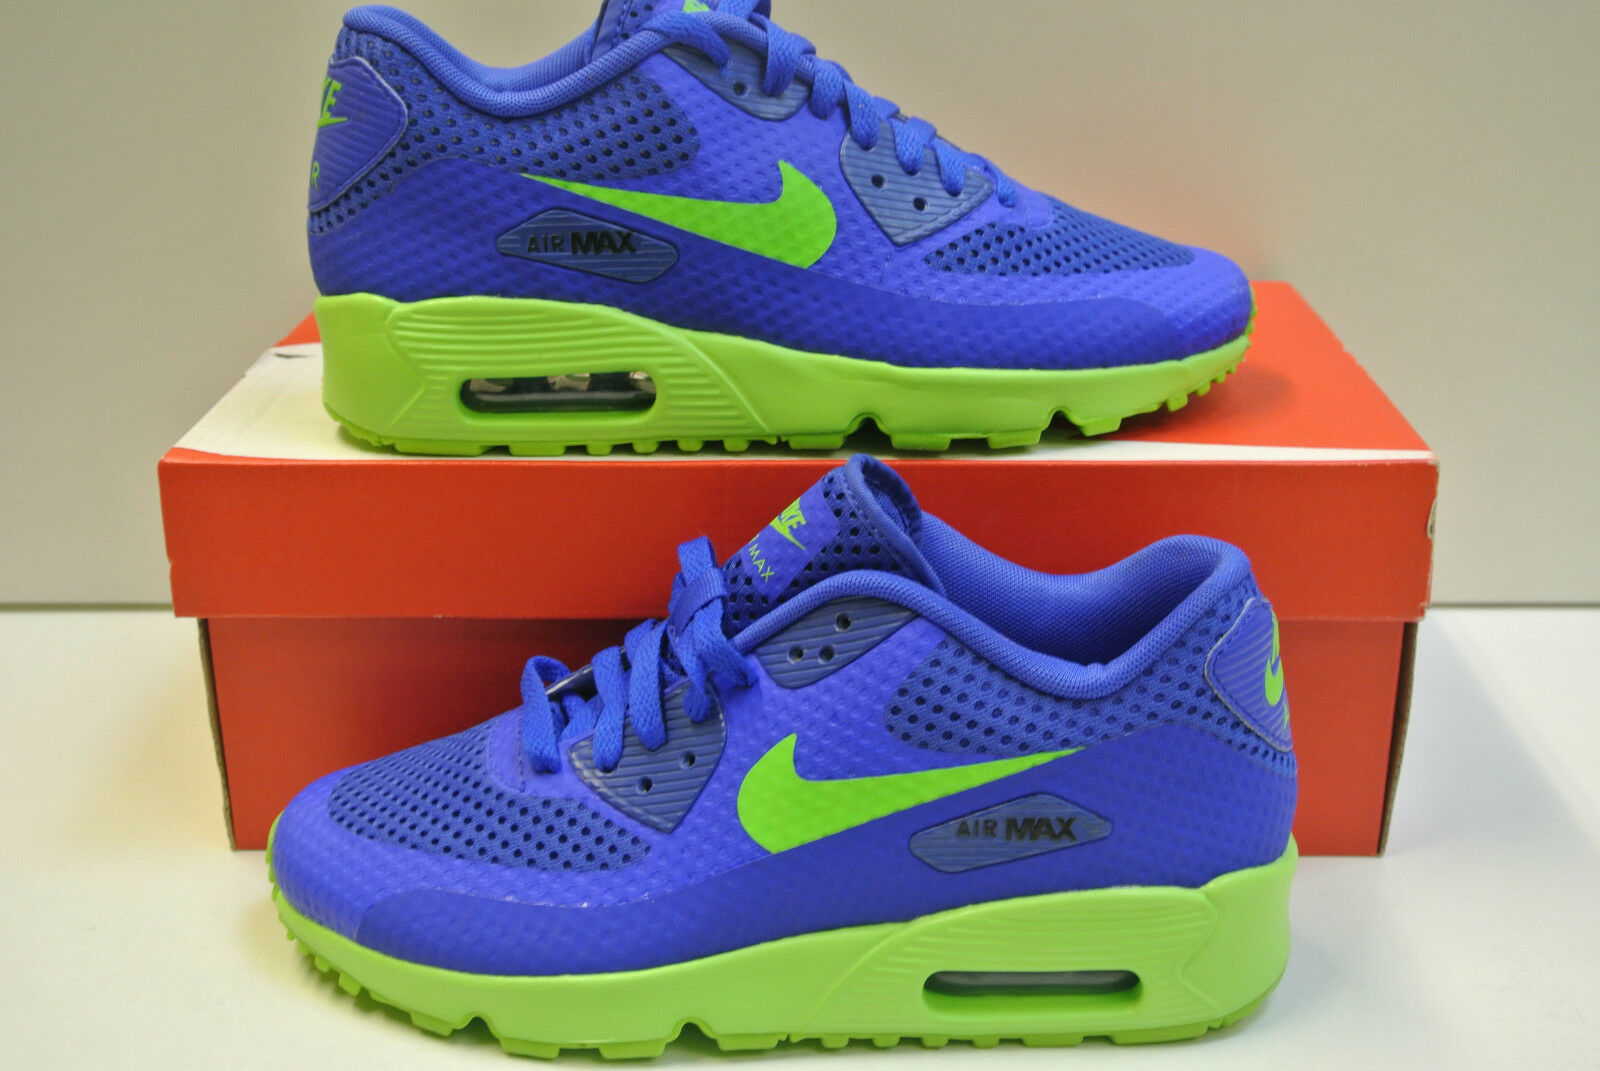 Nike Air Max 90 Br gr. S LECTIONNABLE neuf et emballage d'origine 833475 400